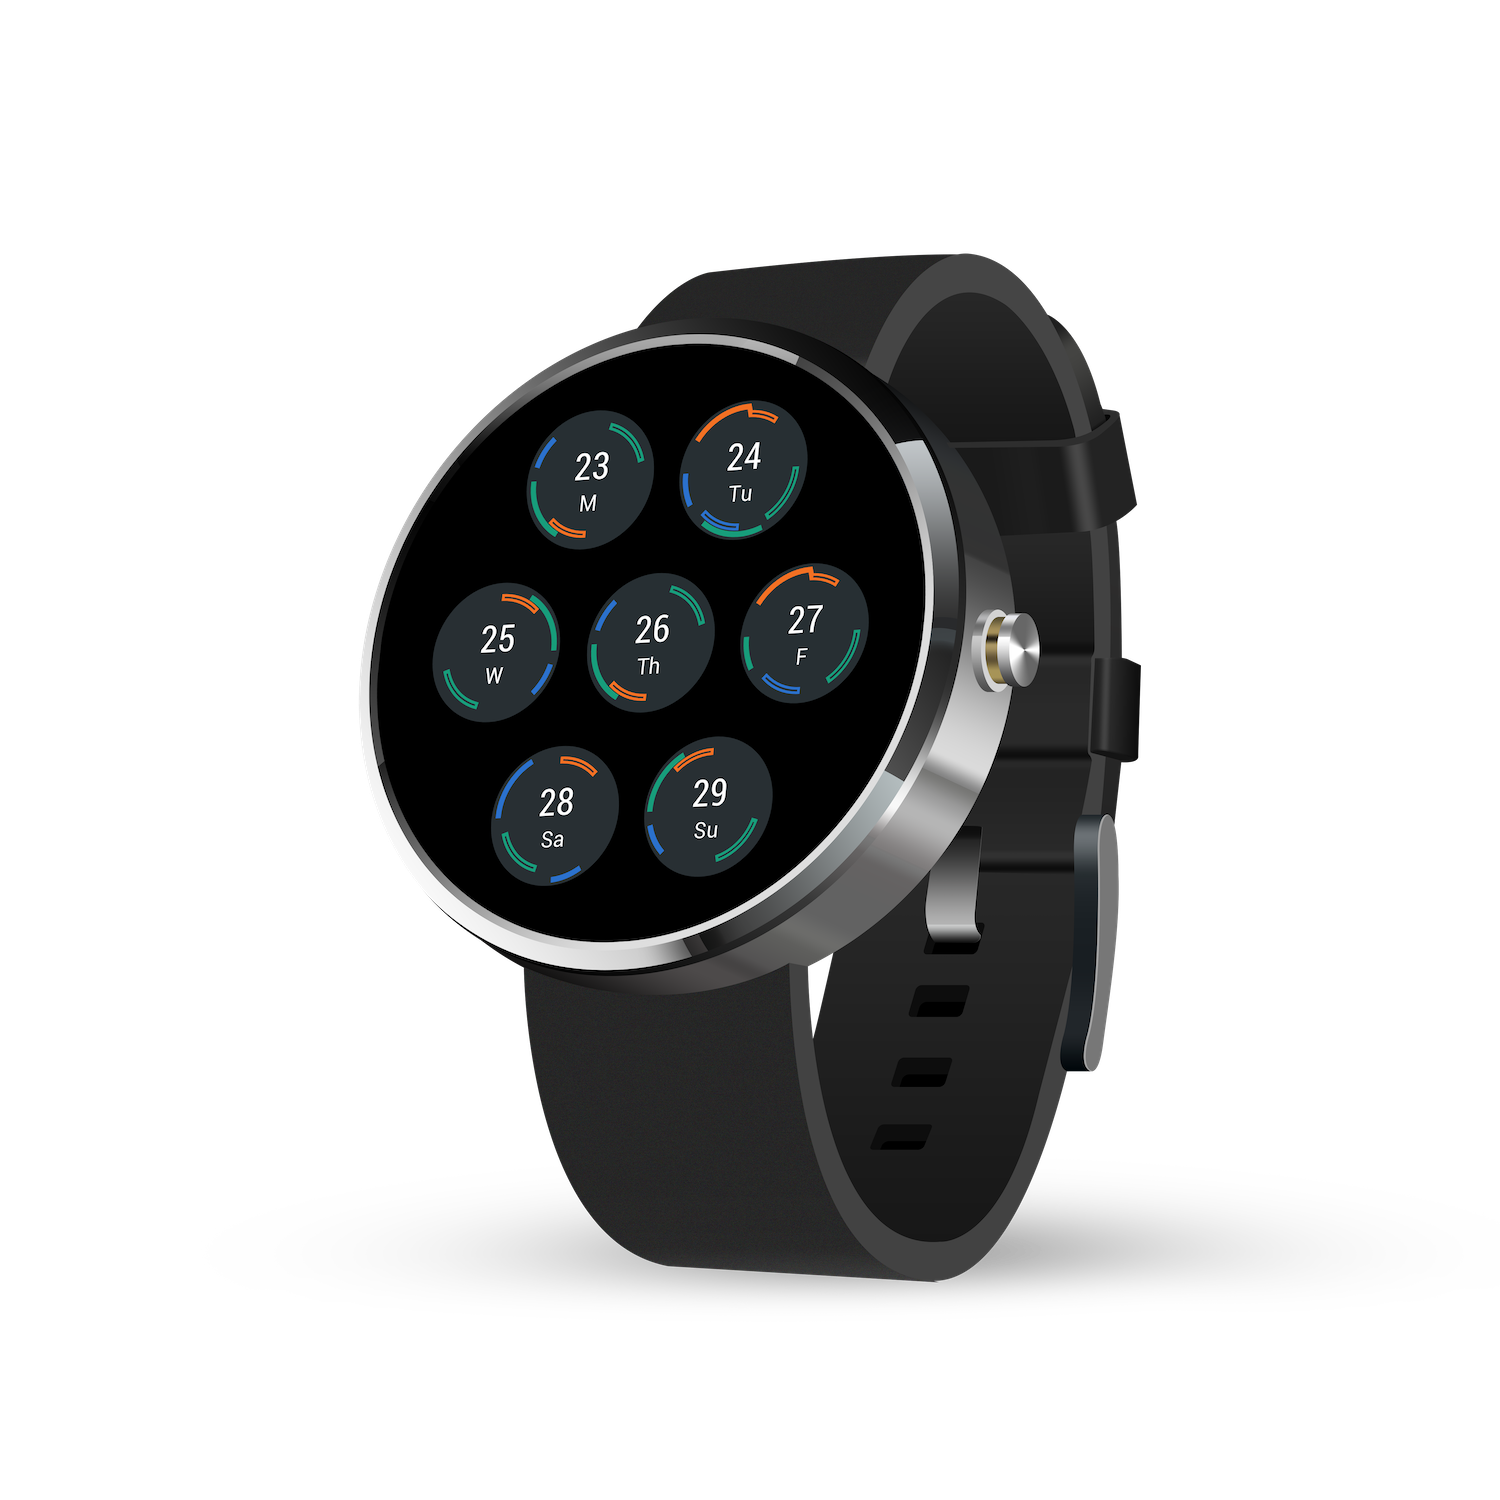 Watch Mockup.png